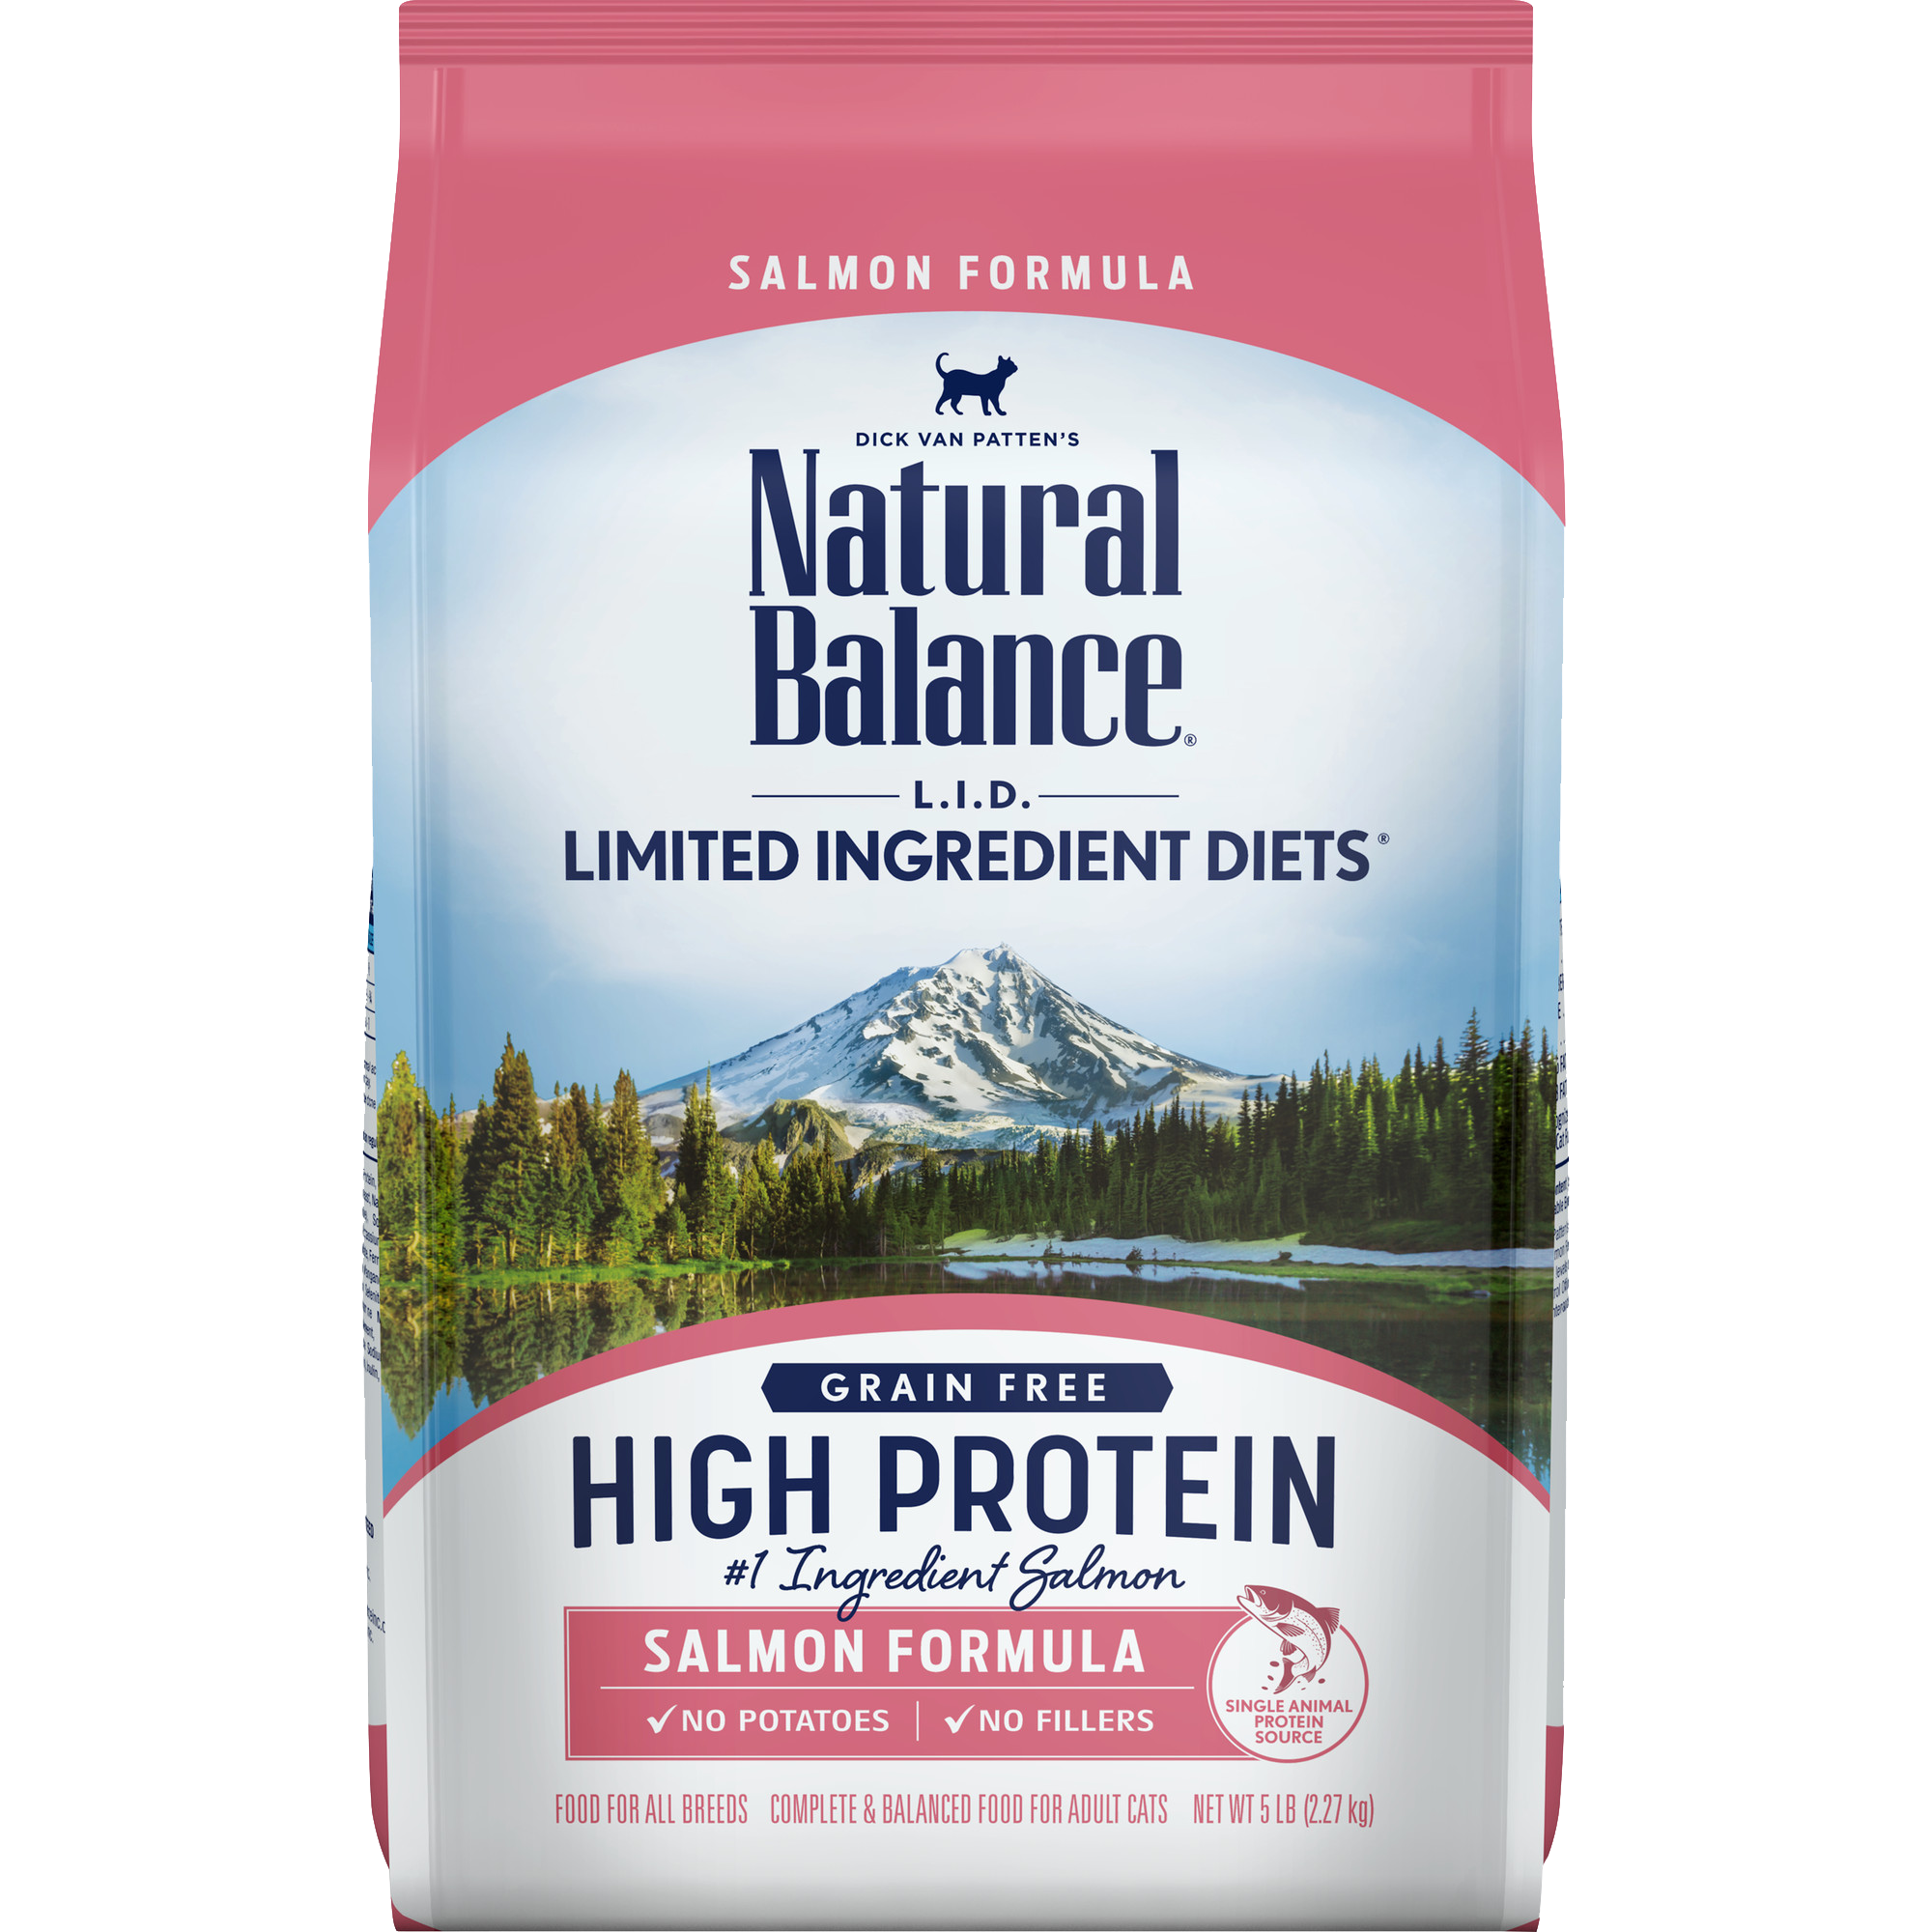 Natural Balance L.I.D. High Protein Salmon Formula Cat Dry Food, 5-lb